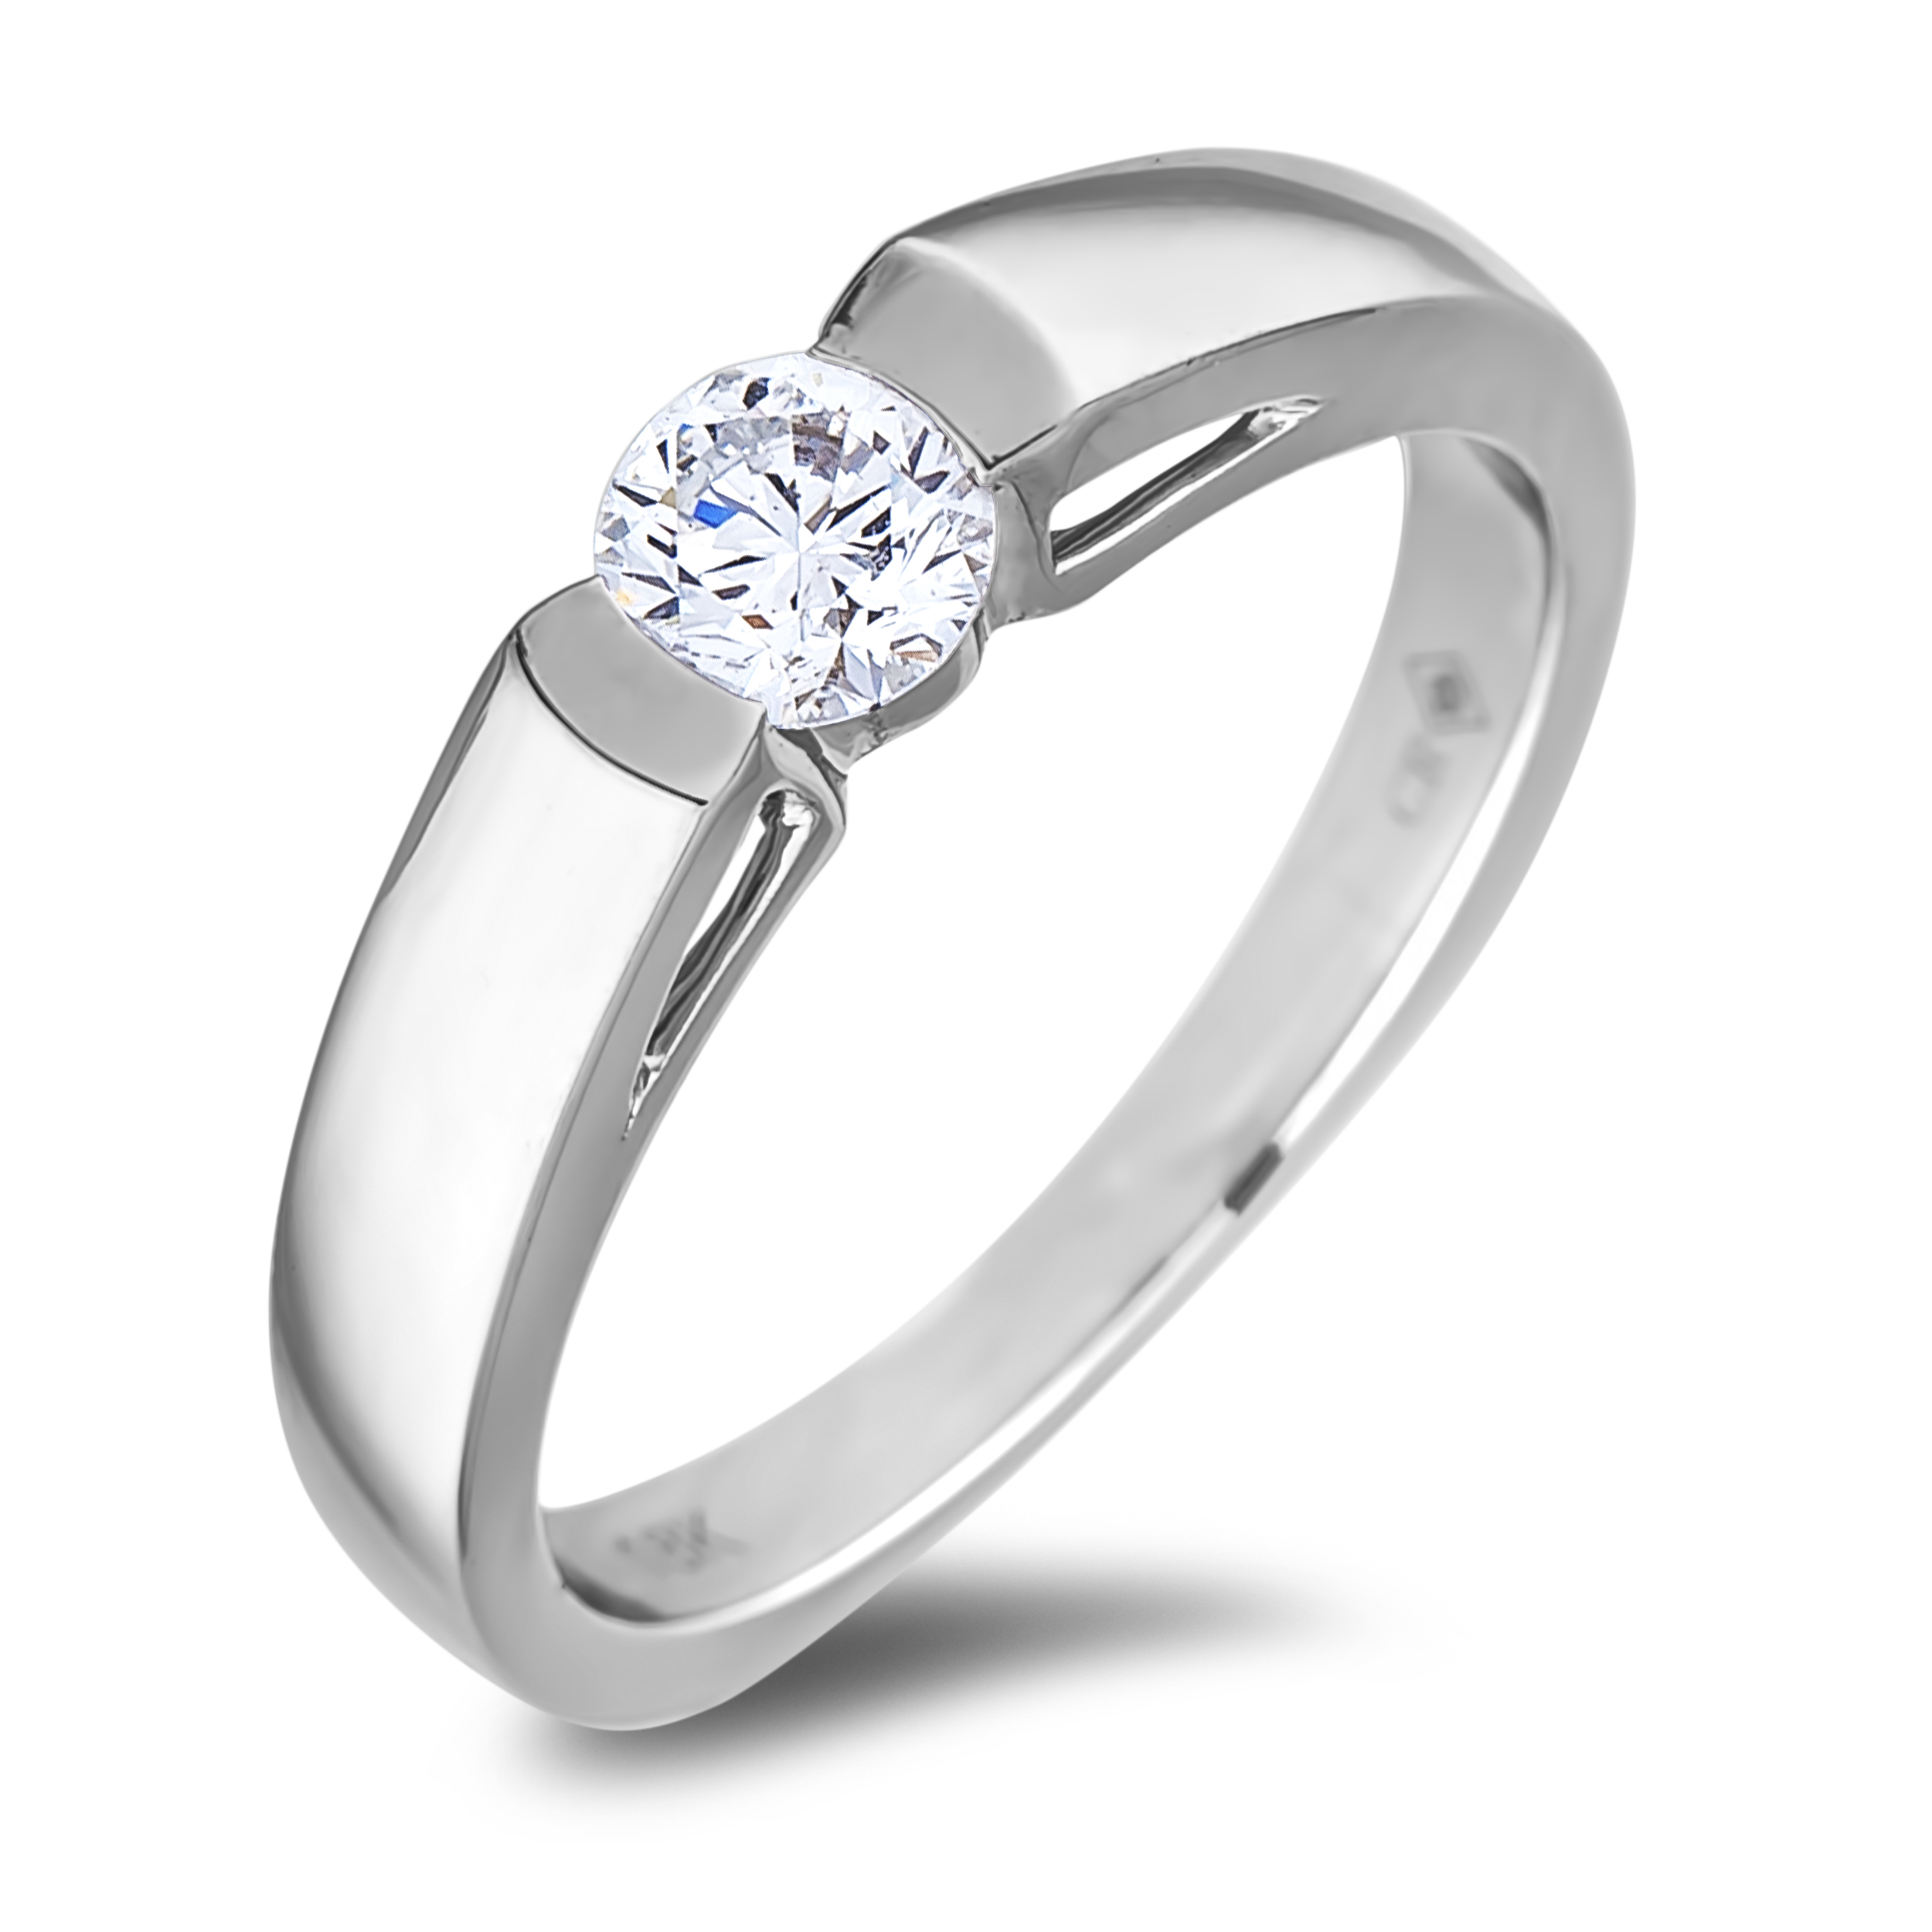 Diamond Solitaires SEC2137 (Rings)